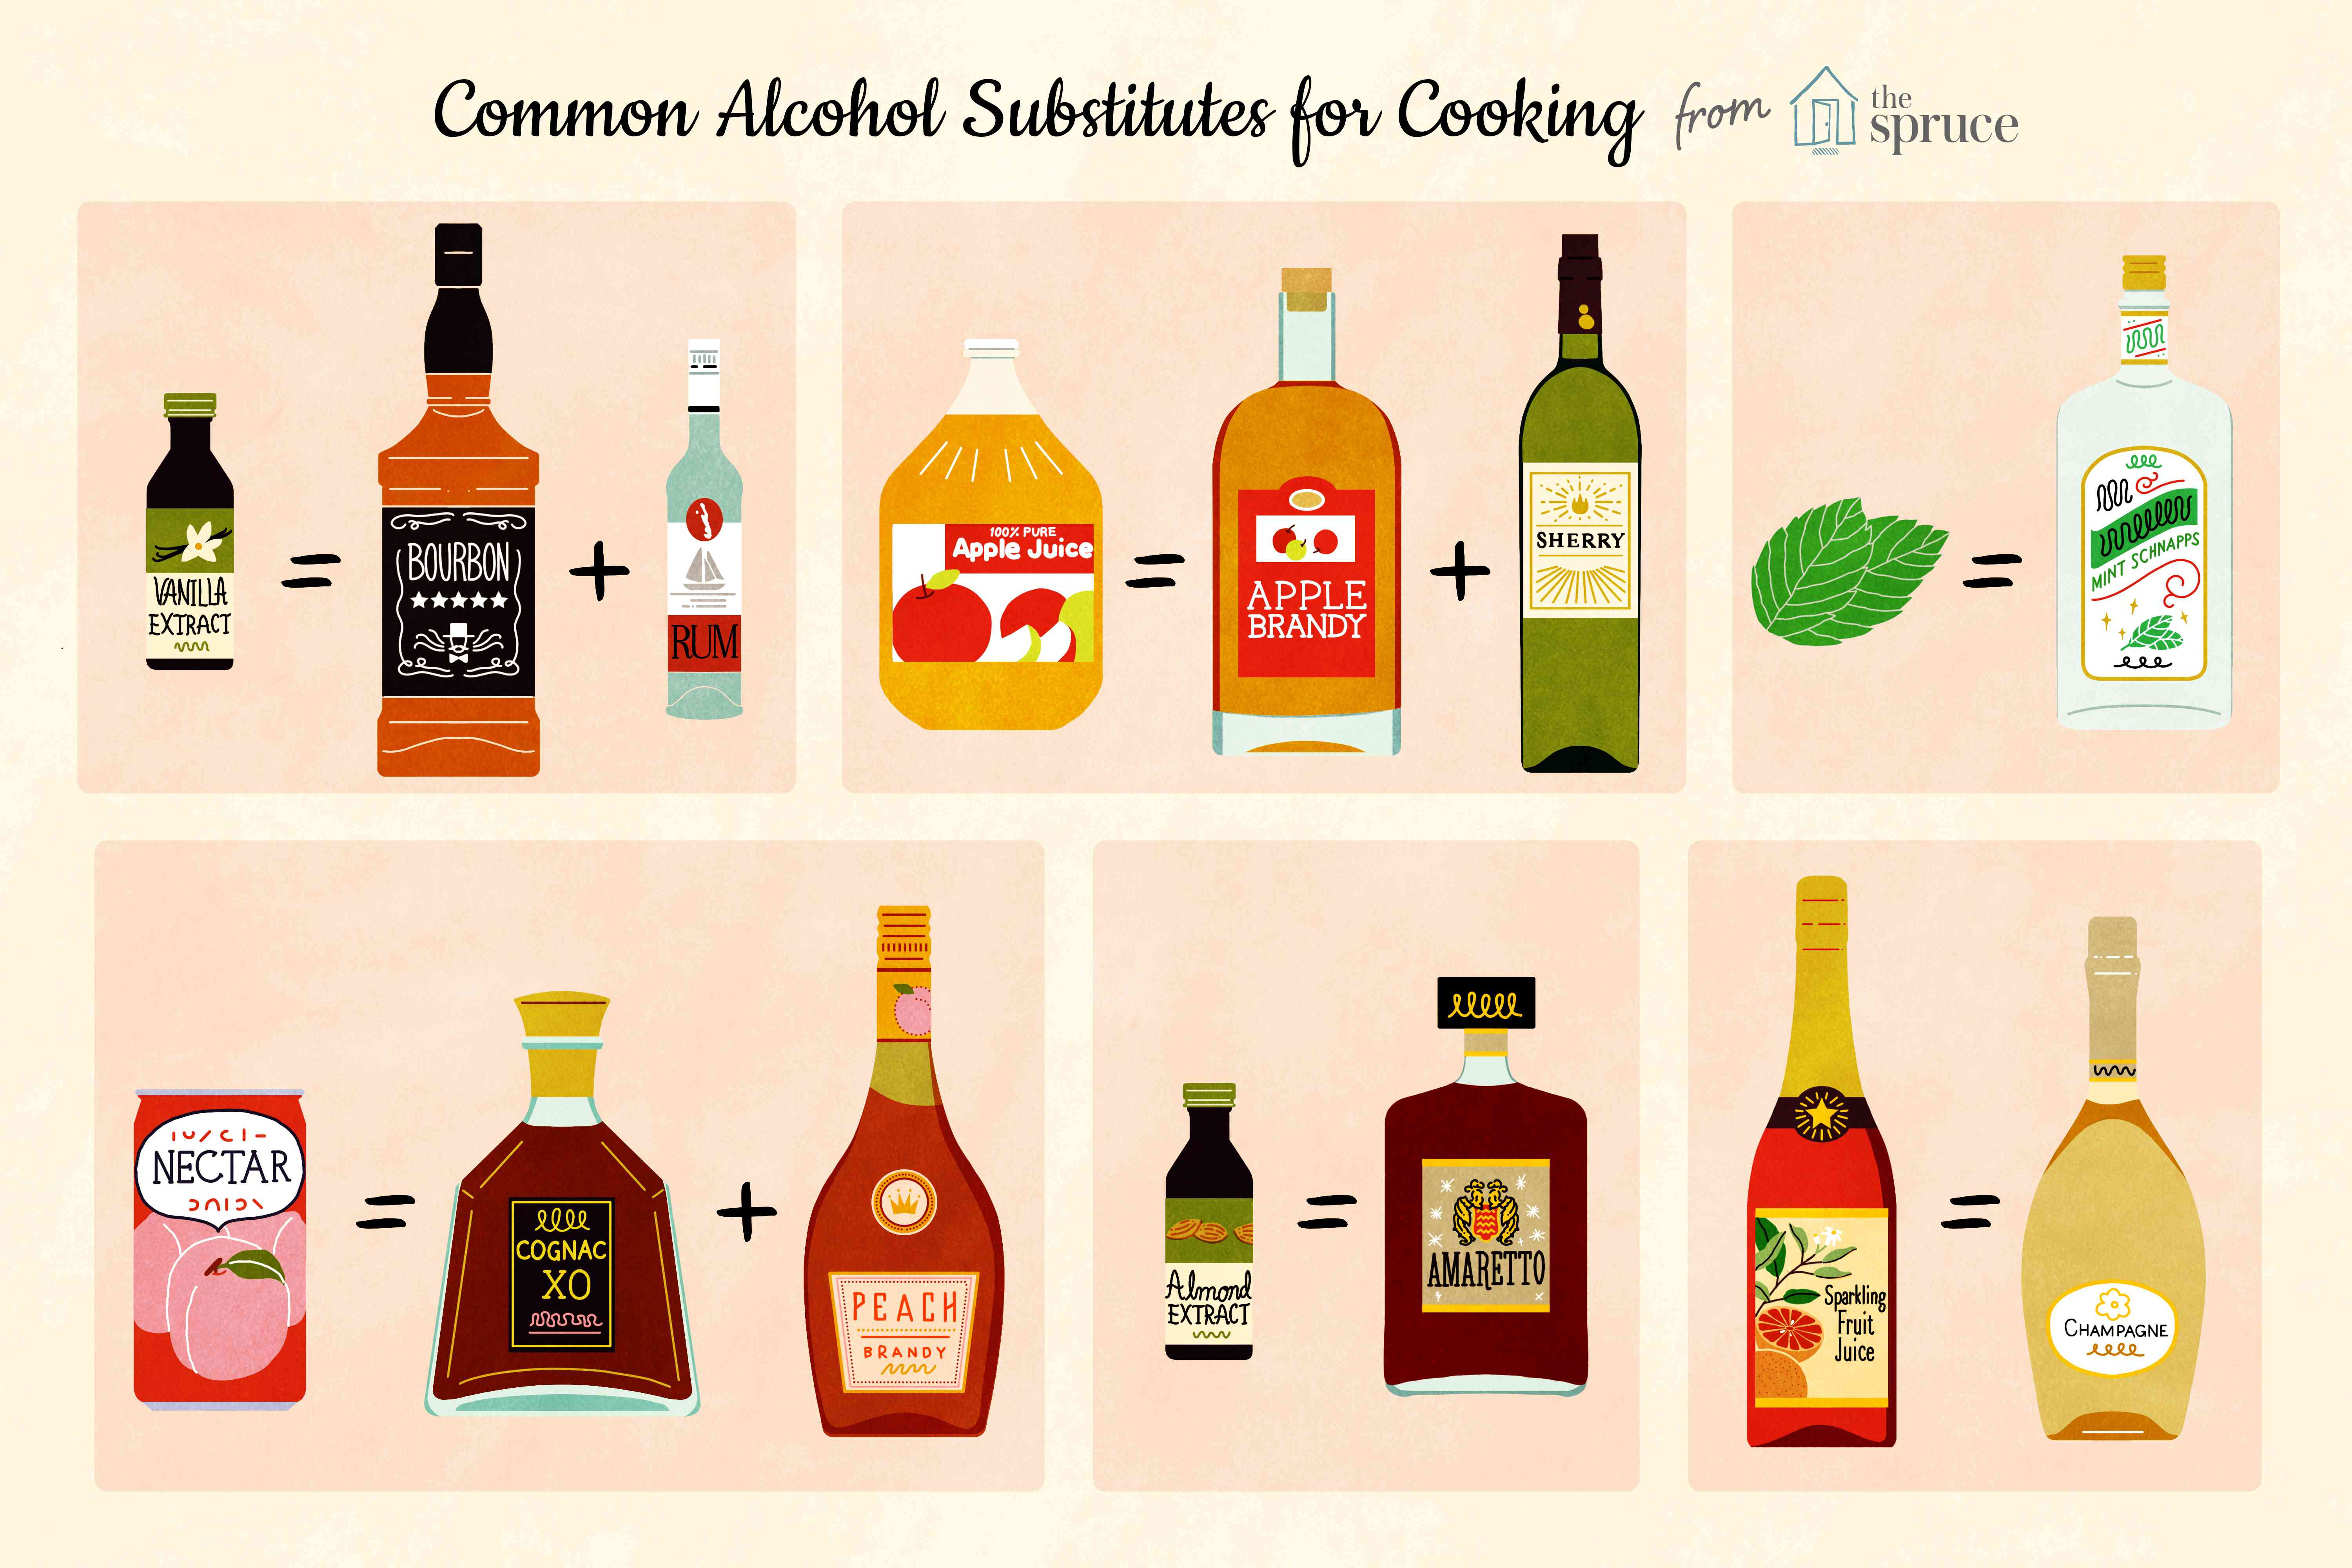 Illustration that depicts substitutions for alcohol commonly used in cooking